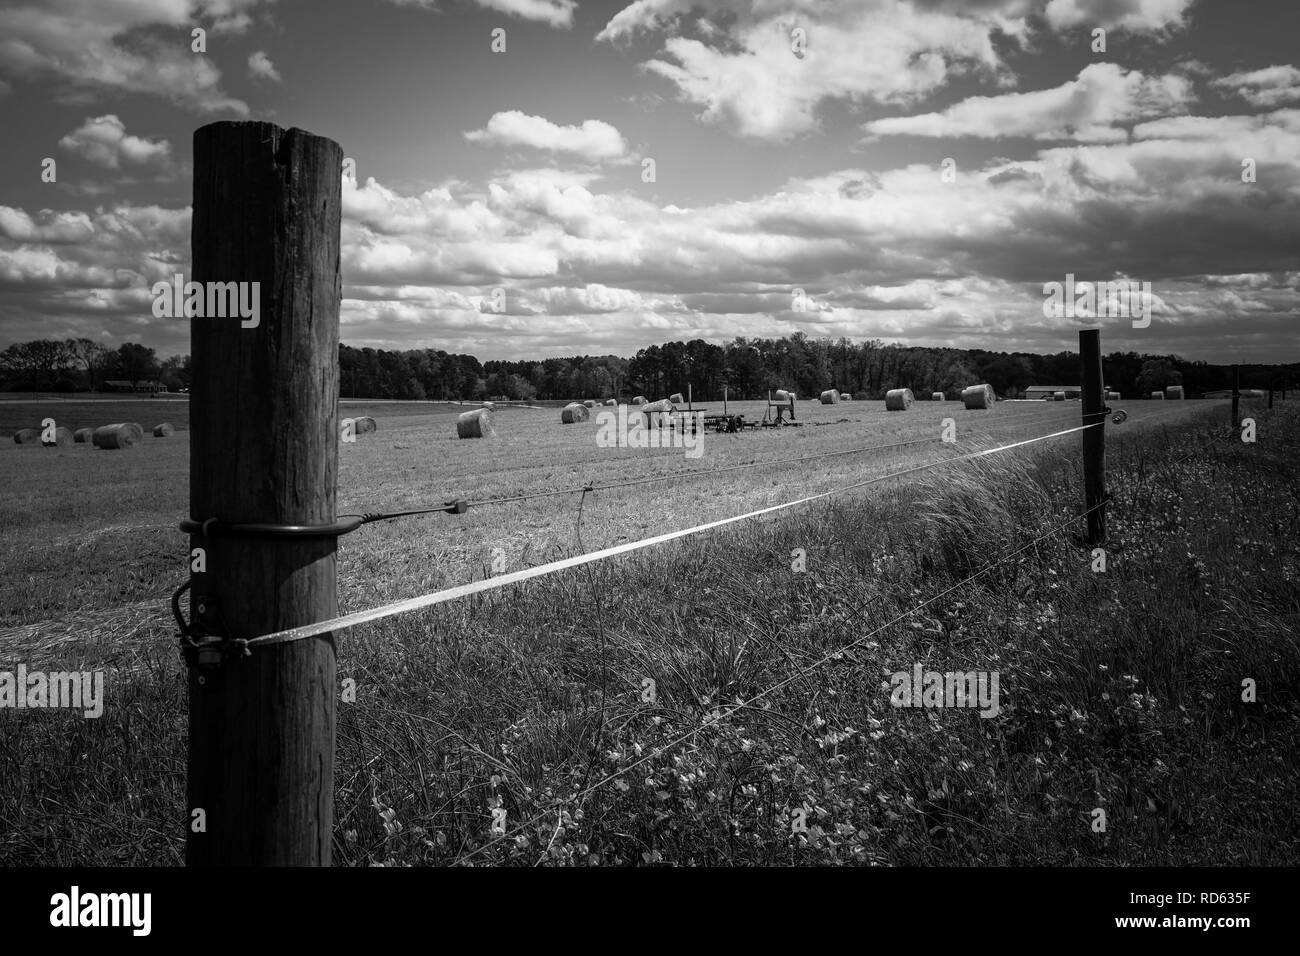 Black and white of a fence by a freshly cut winter wheat field with bales of straw scattered on the land. Raleigh, North Carolina. - Stock Image